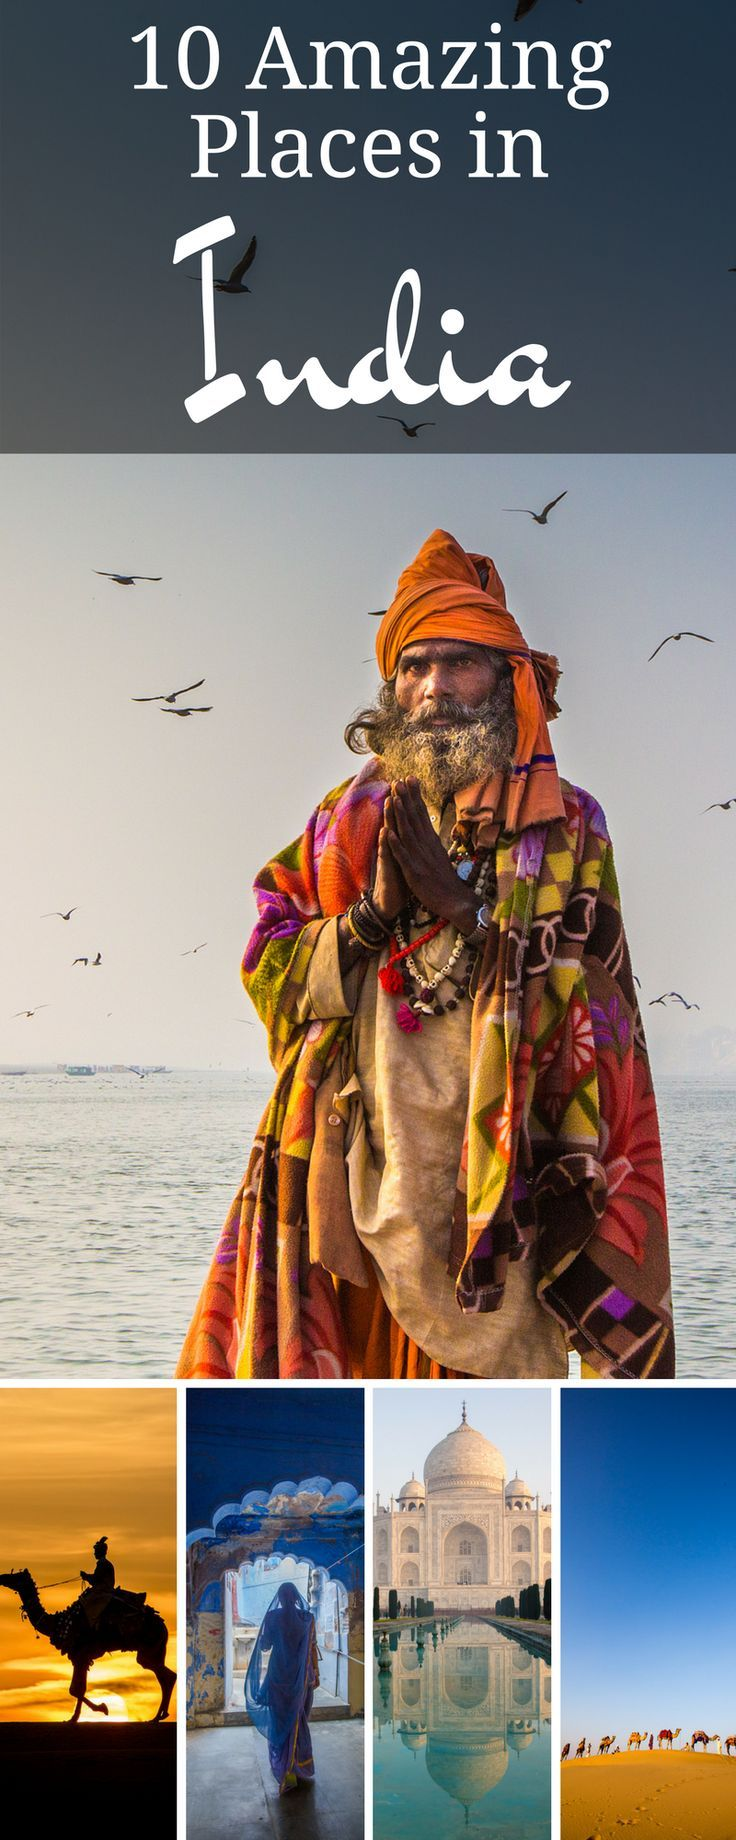 India is truly incredible! Here are ten of my favorite sites to see and places to visit.  www.travel4life.club